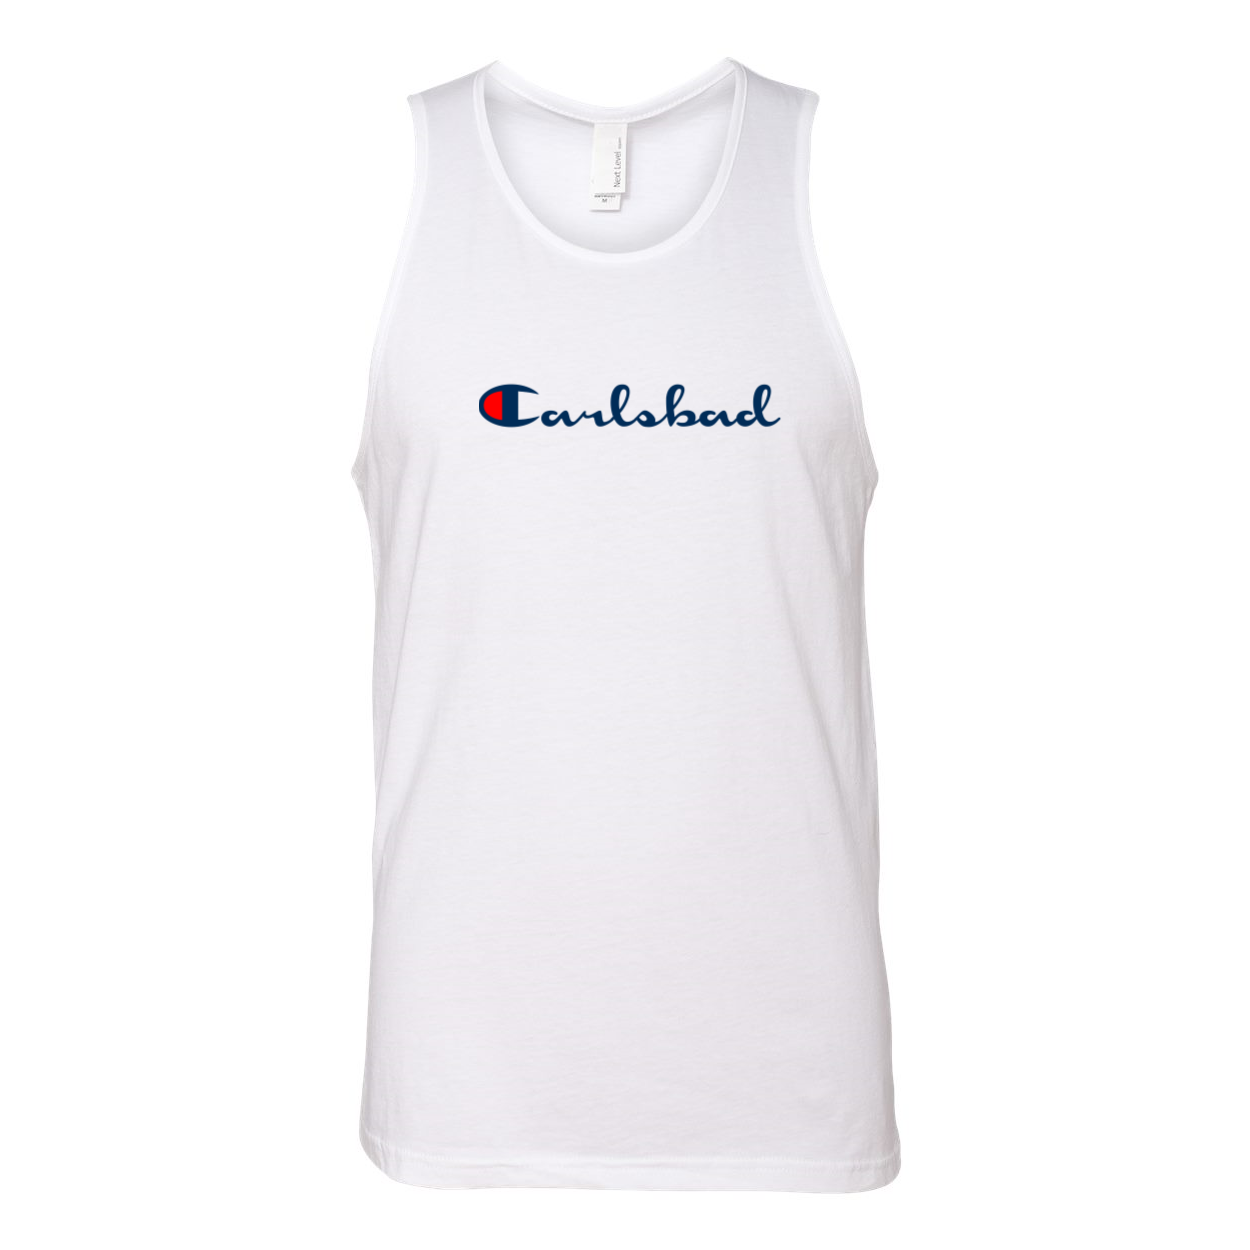 Carlsbad - Tank Top (Men's)